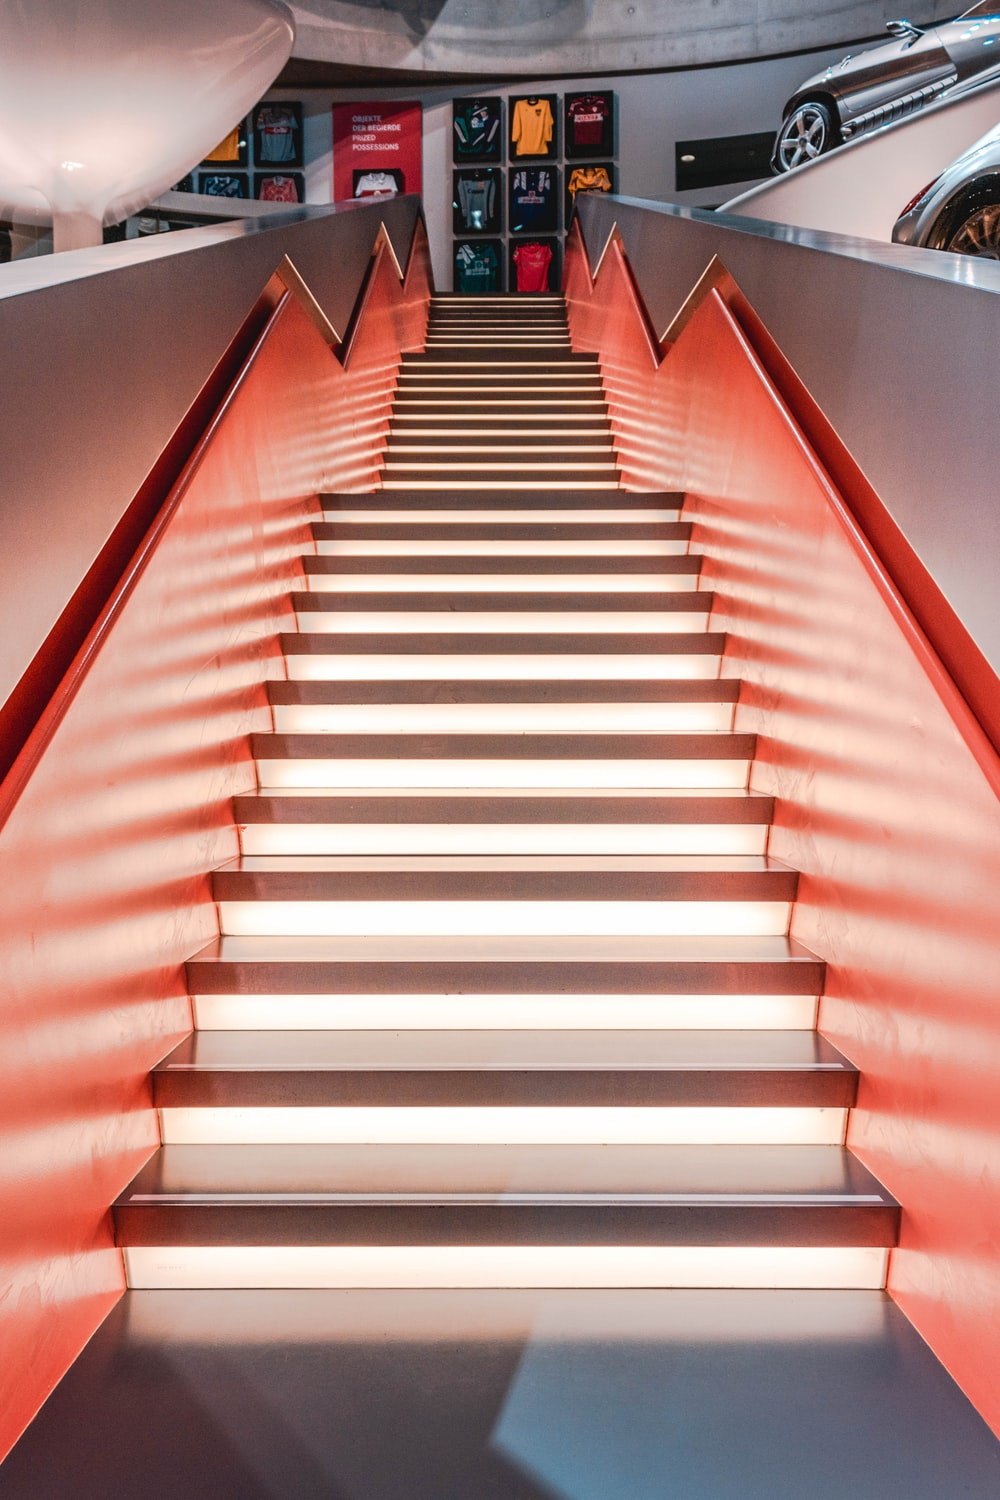 orange and white lighted stairs